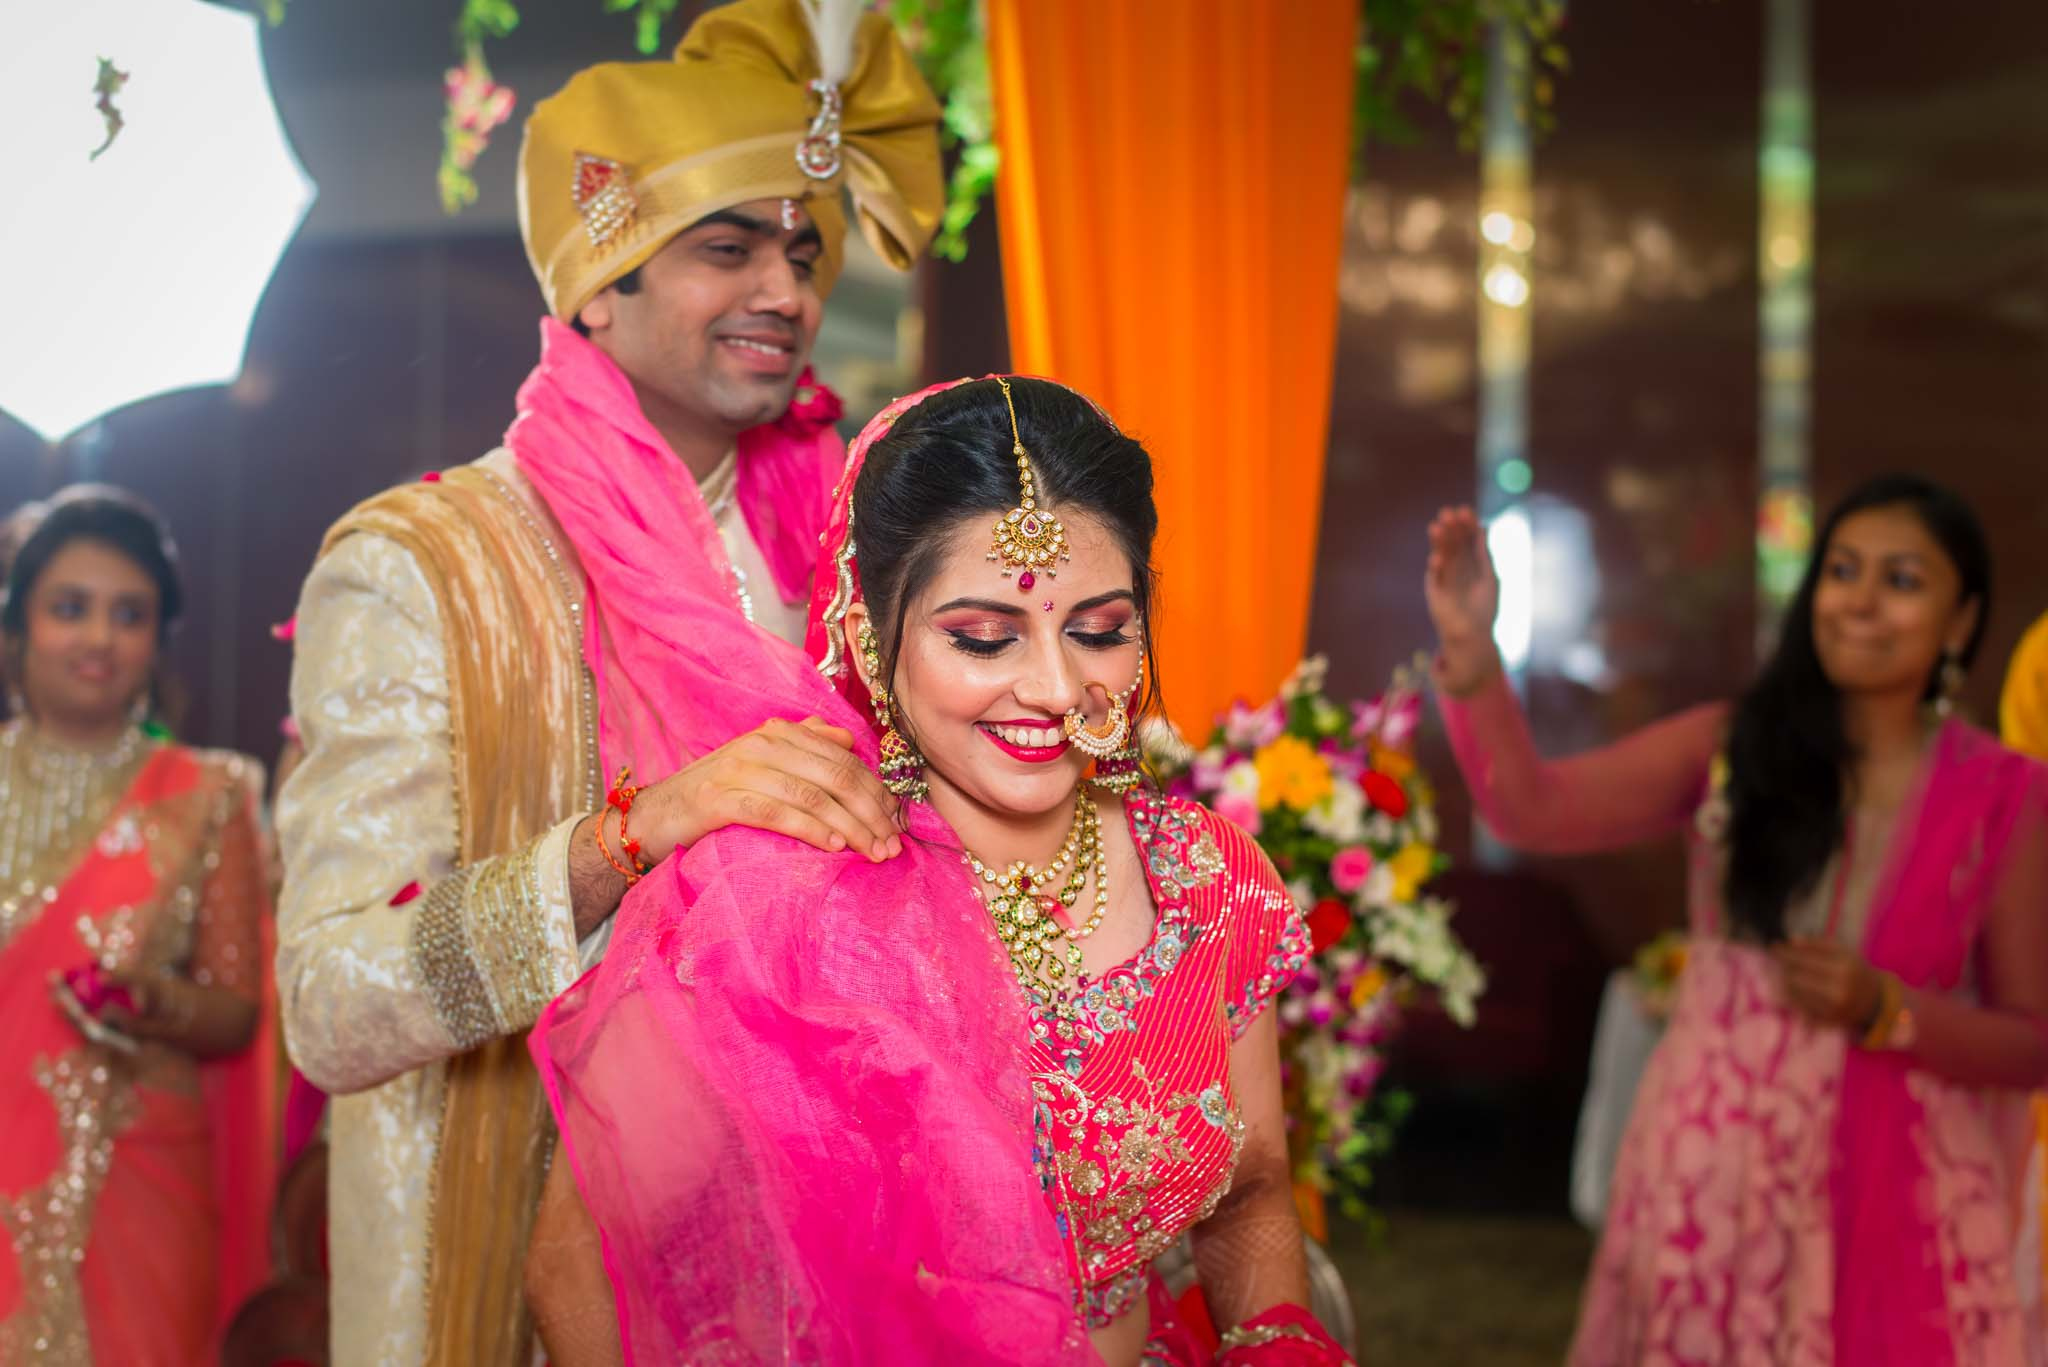 Candid-Wedding-Photography-Nagpur-Destination-80